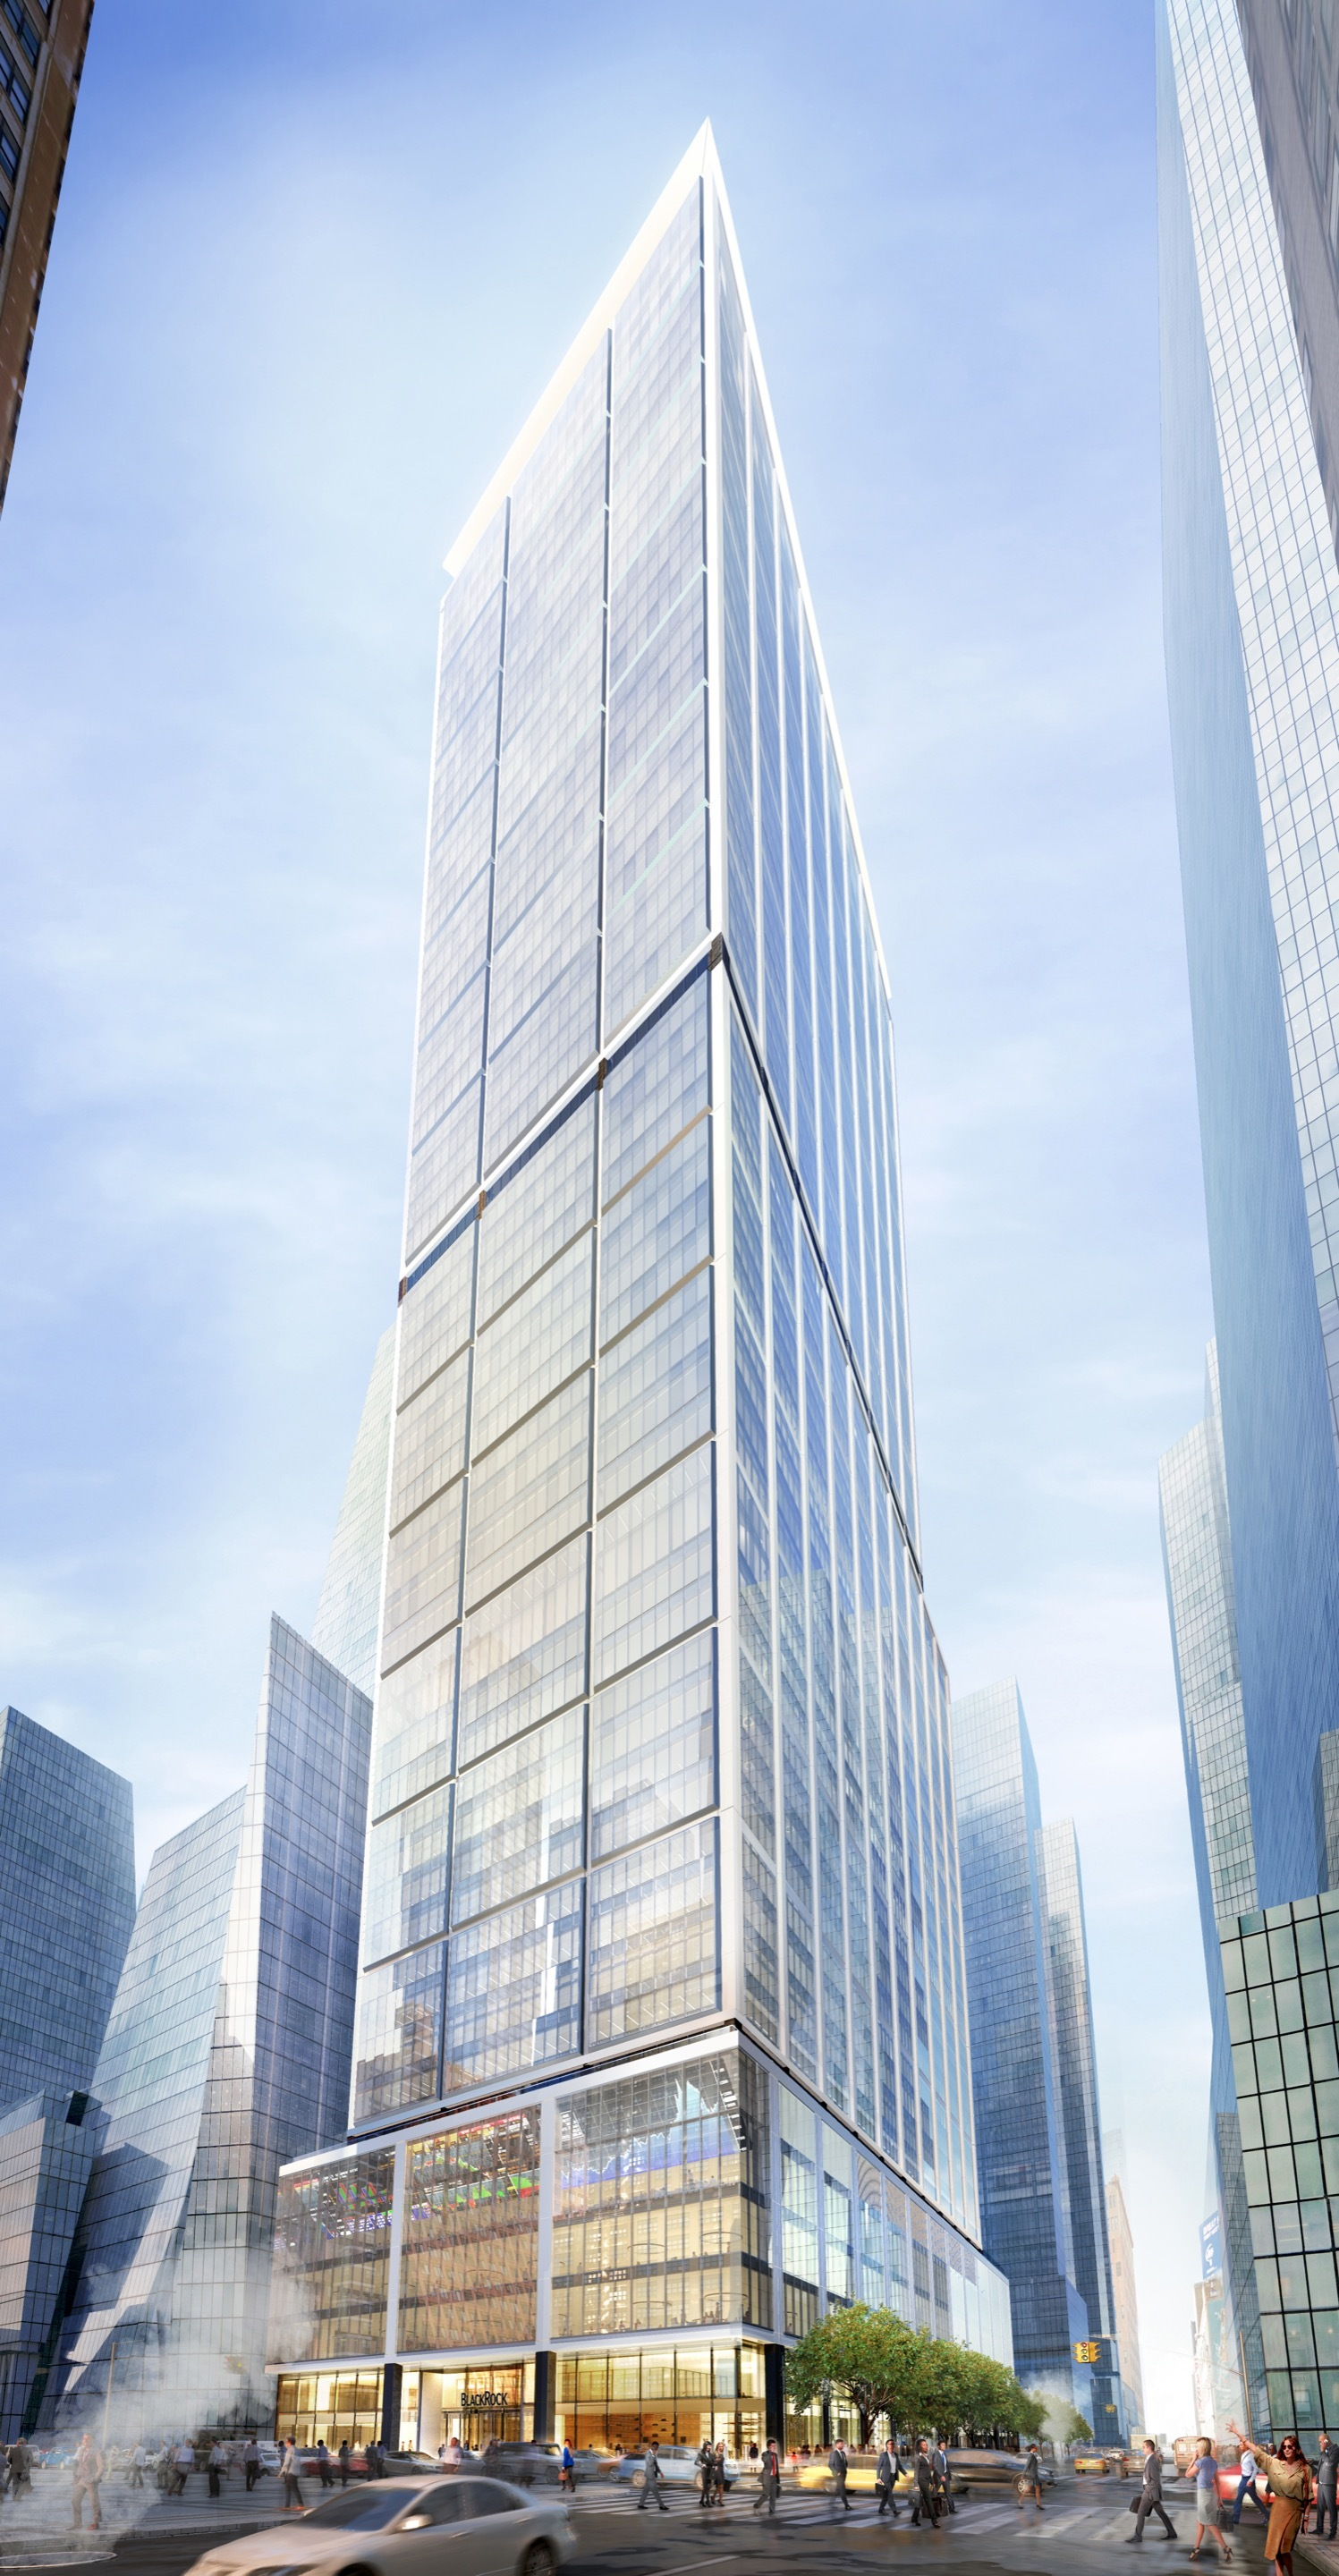 50 Hudson Yards >> Gallery of Foster + Partners' Plans for 50 Hudson Yards in New York Unveiled - 3